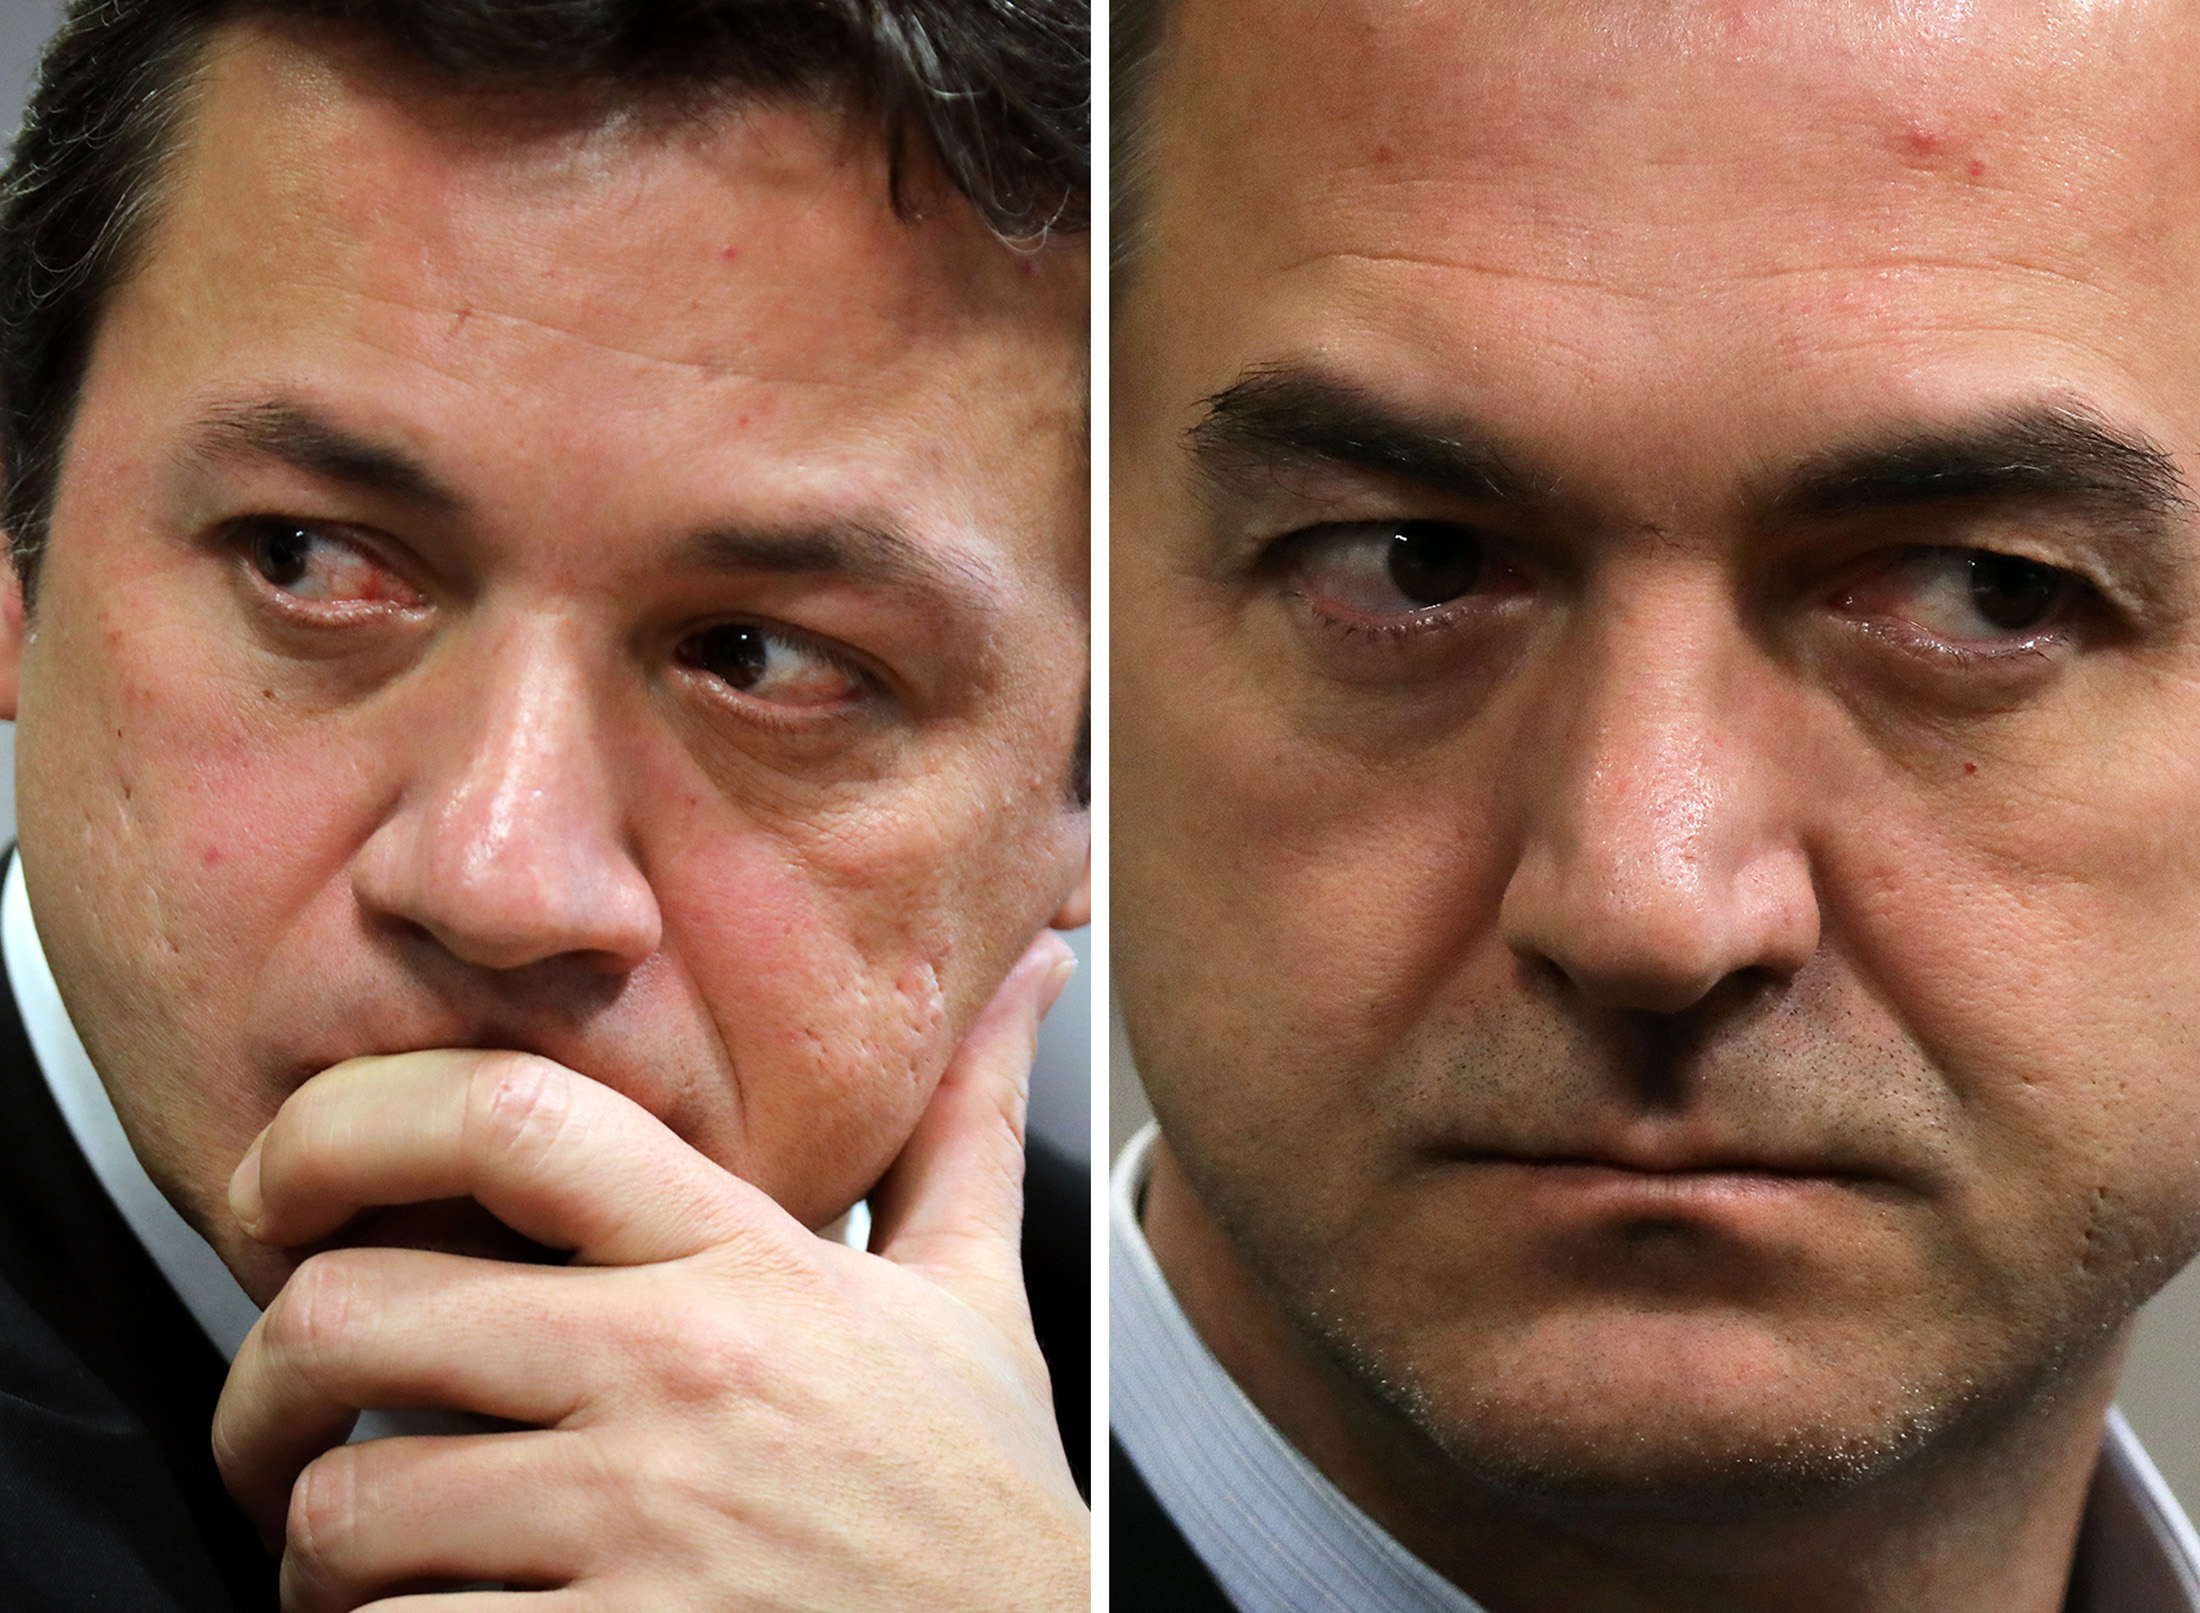 bloomberg.com - Gerson Freitas Jr - On 'Joesley Day,' JBS Is Stronger But Brazil Continues to Hurt